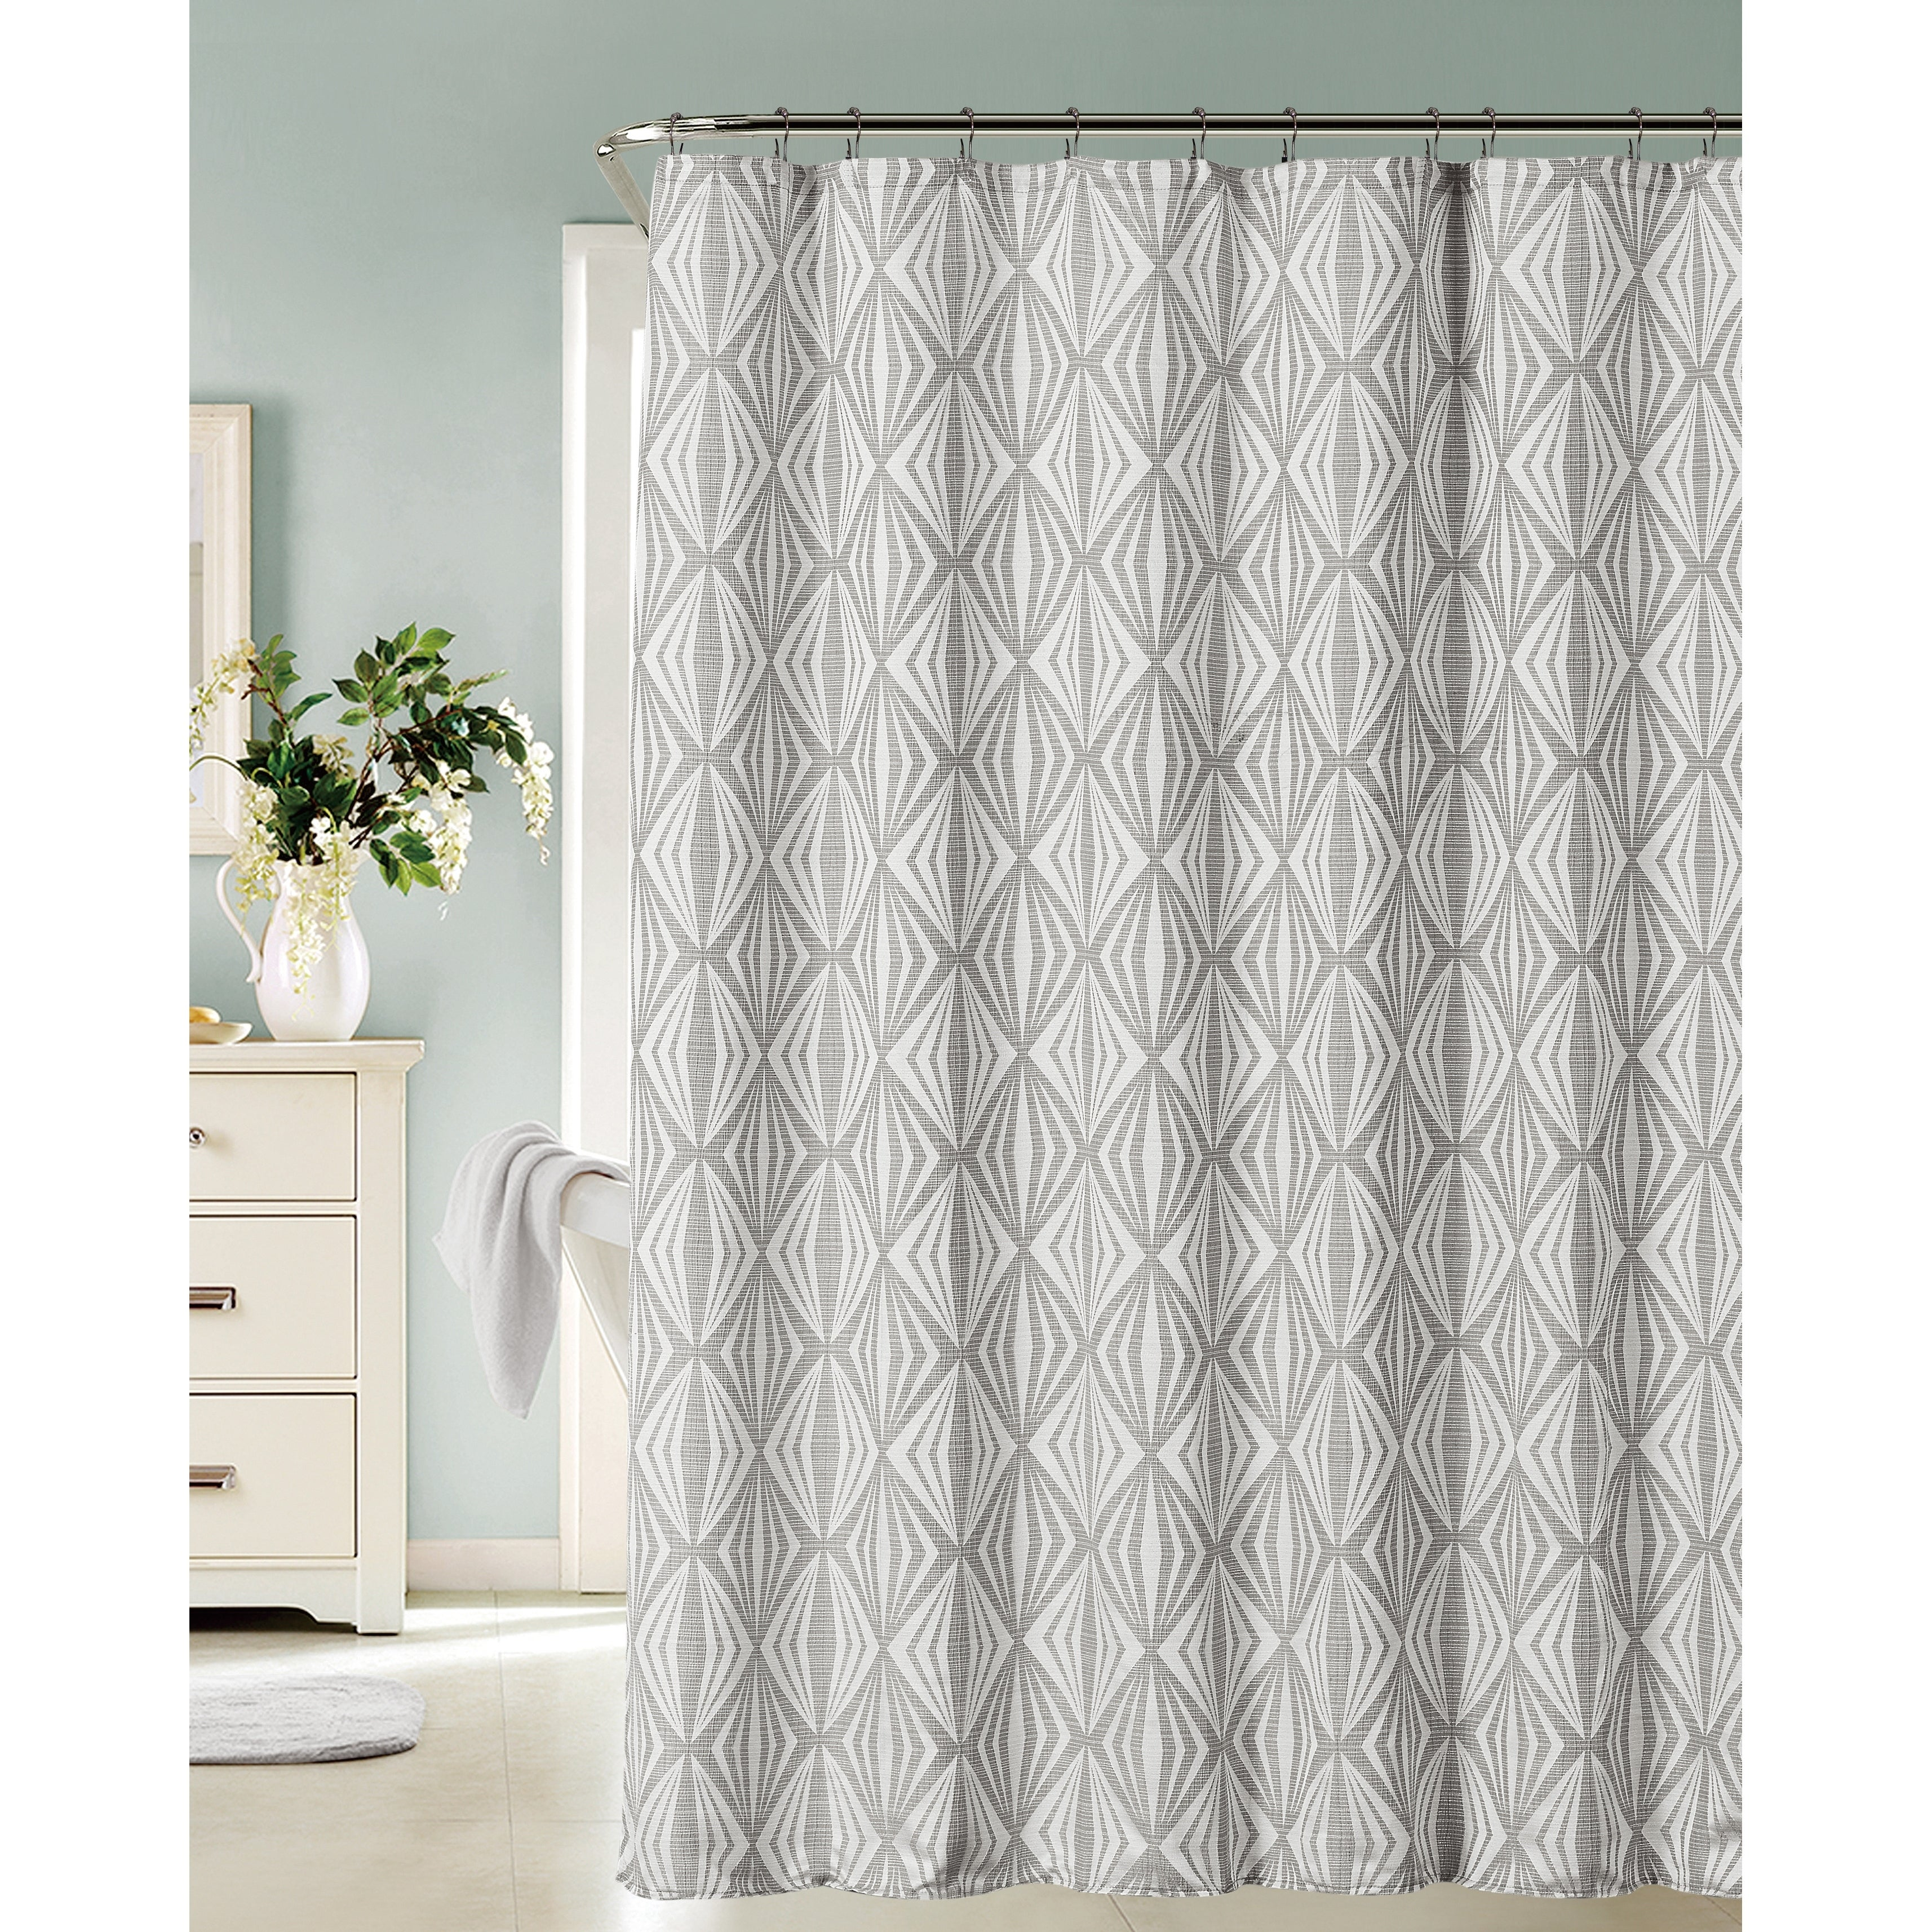 Shop Dainty Home Romance Shower Curtain In Silver